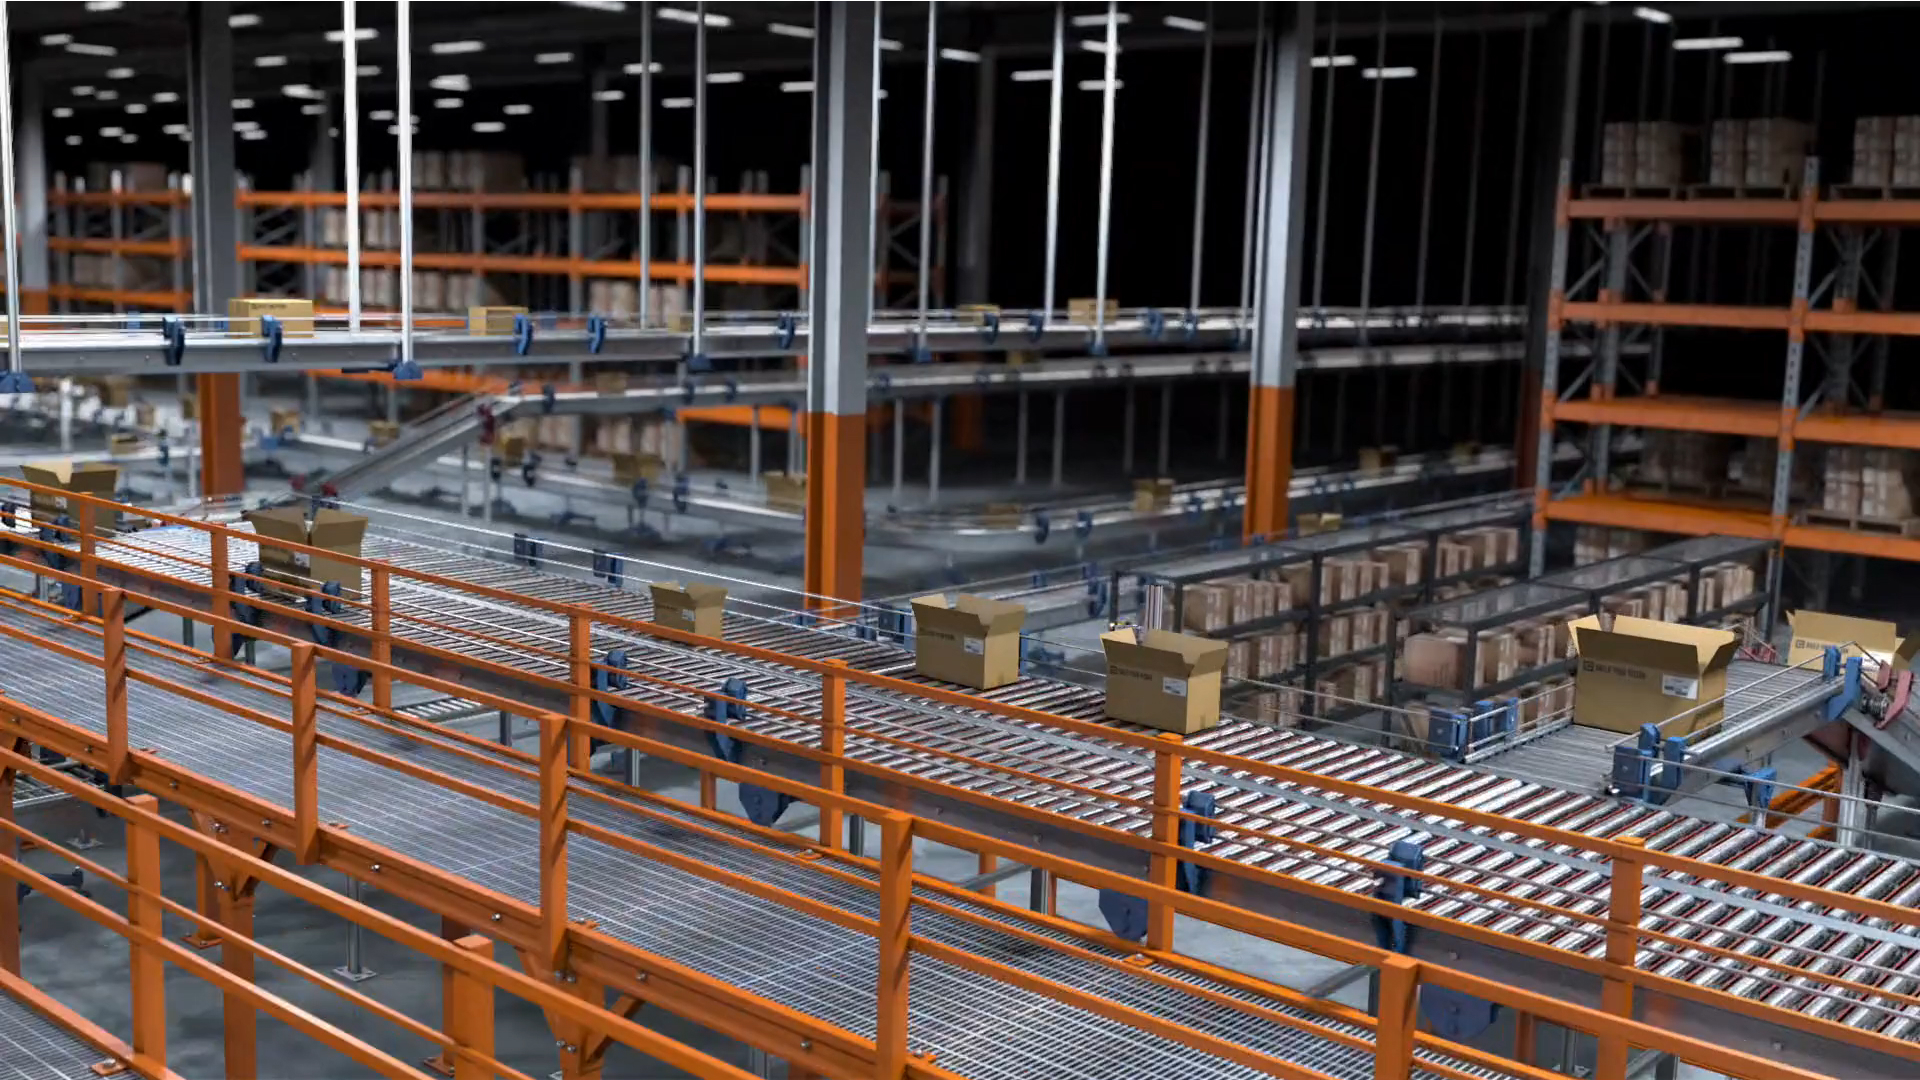 logistics warehouse with orange shelving and conveyors for moving packages